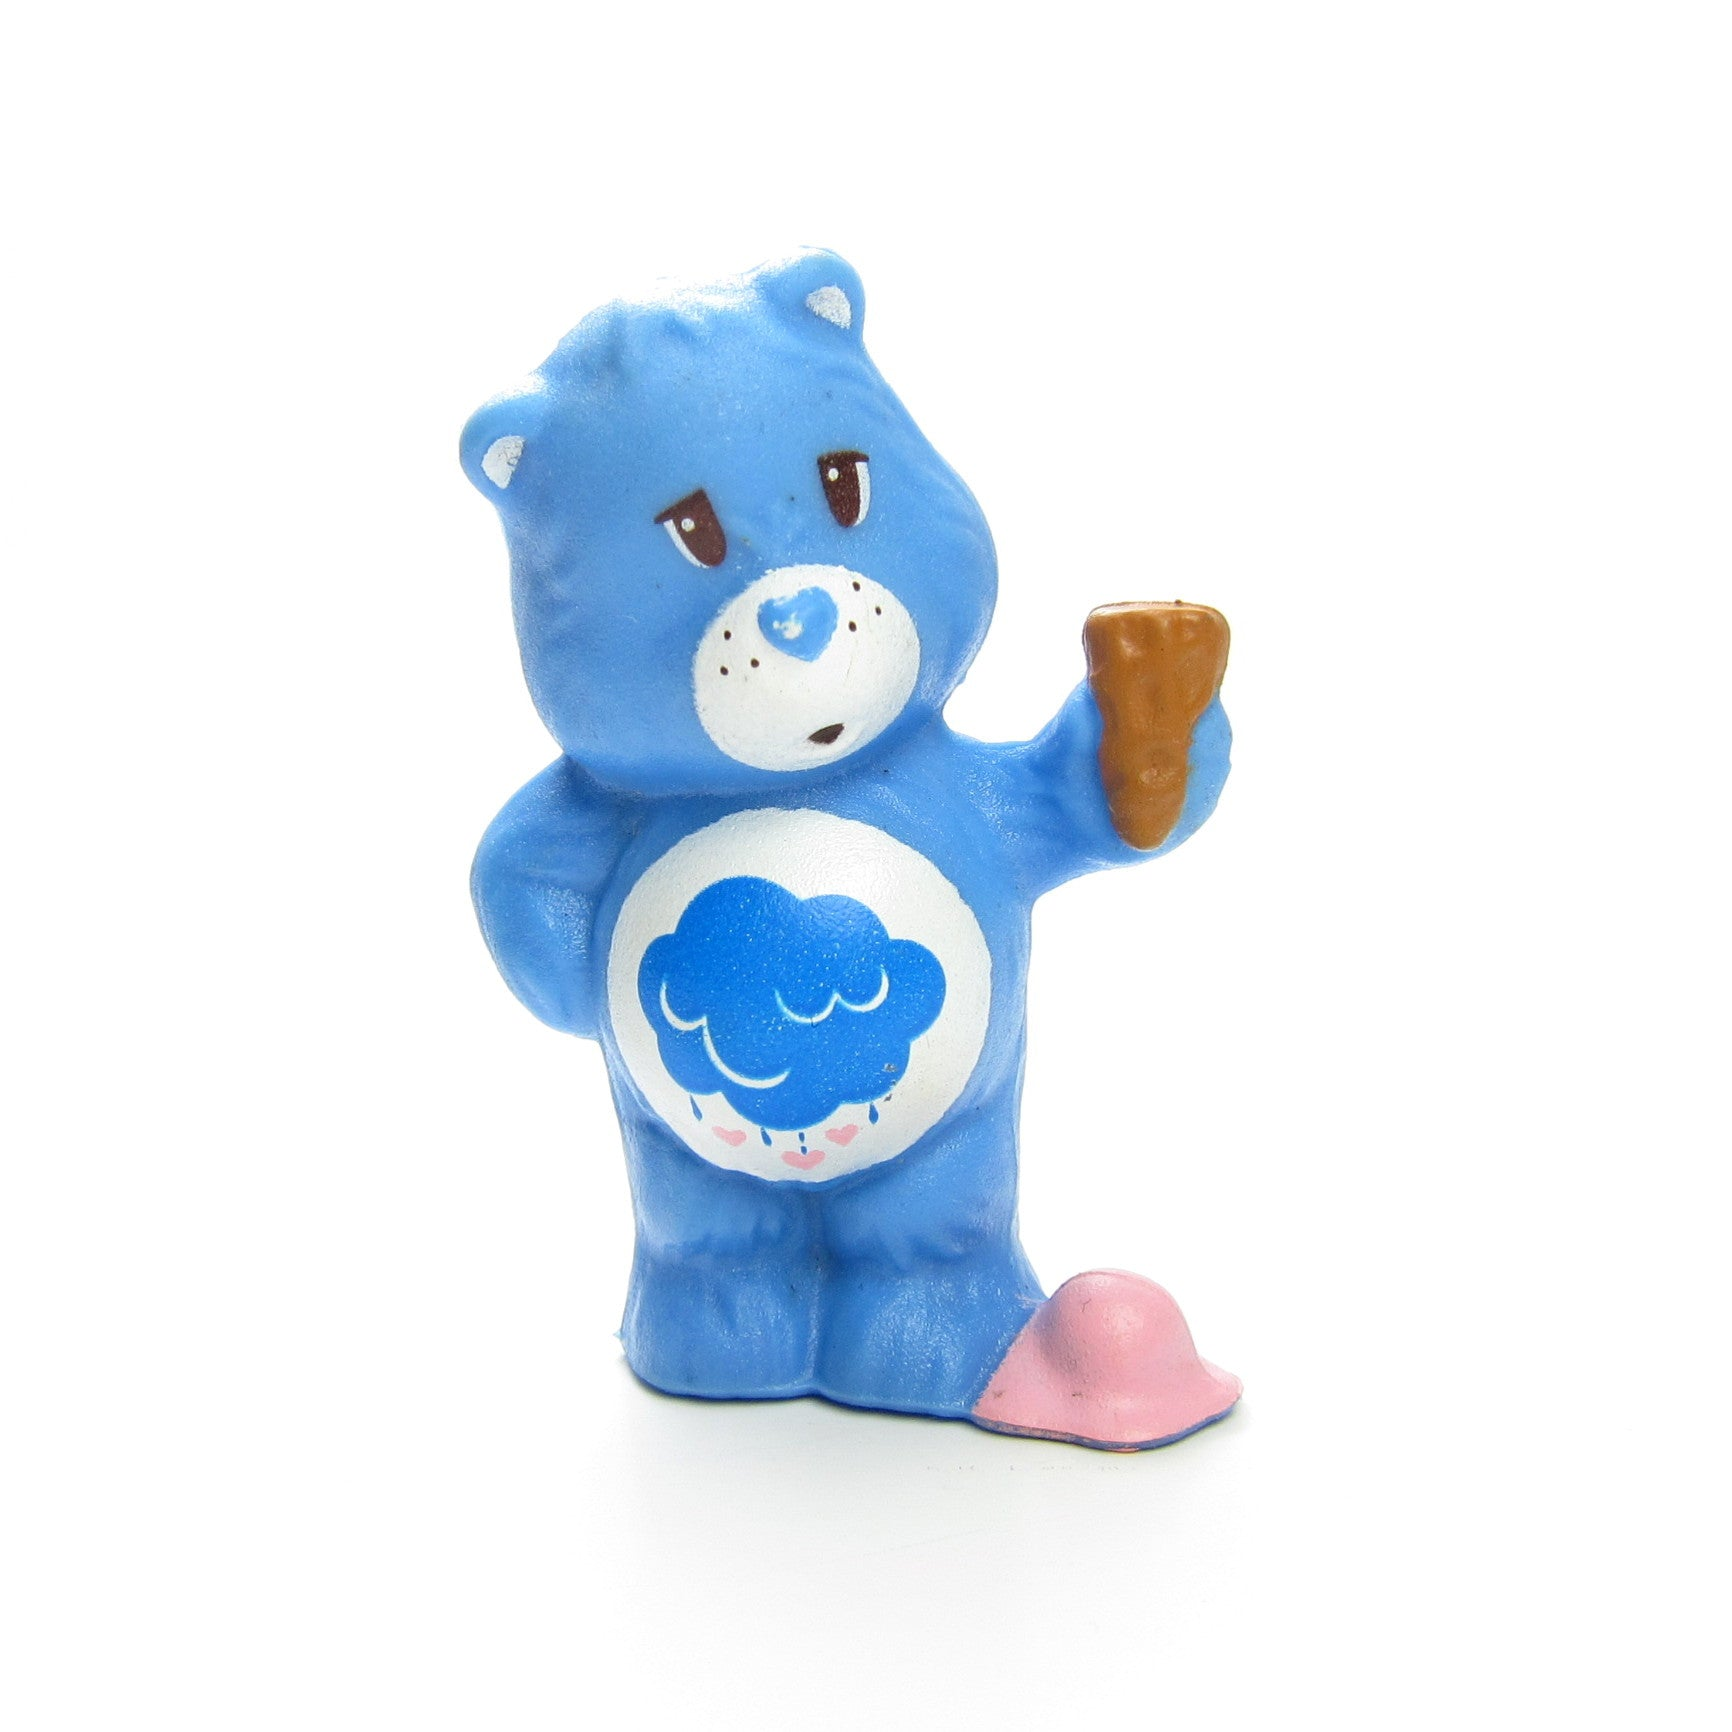 Grumpy Bear Spilling Ice Cream on His Foot figurine